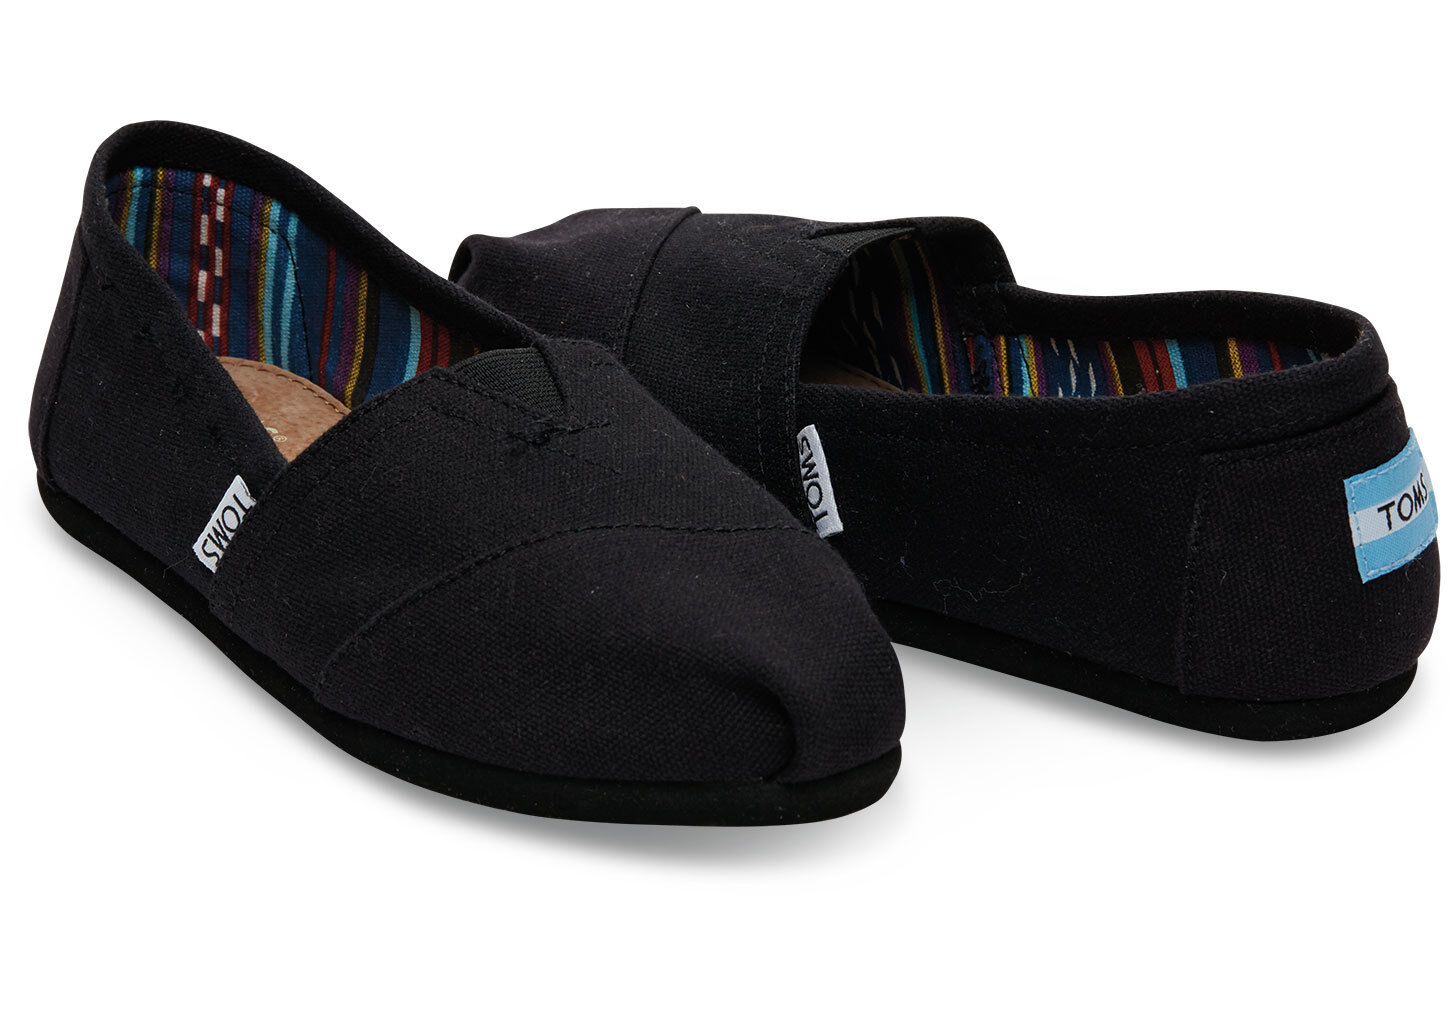 Toms Women's Classics Slip On Black/Black